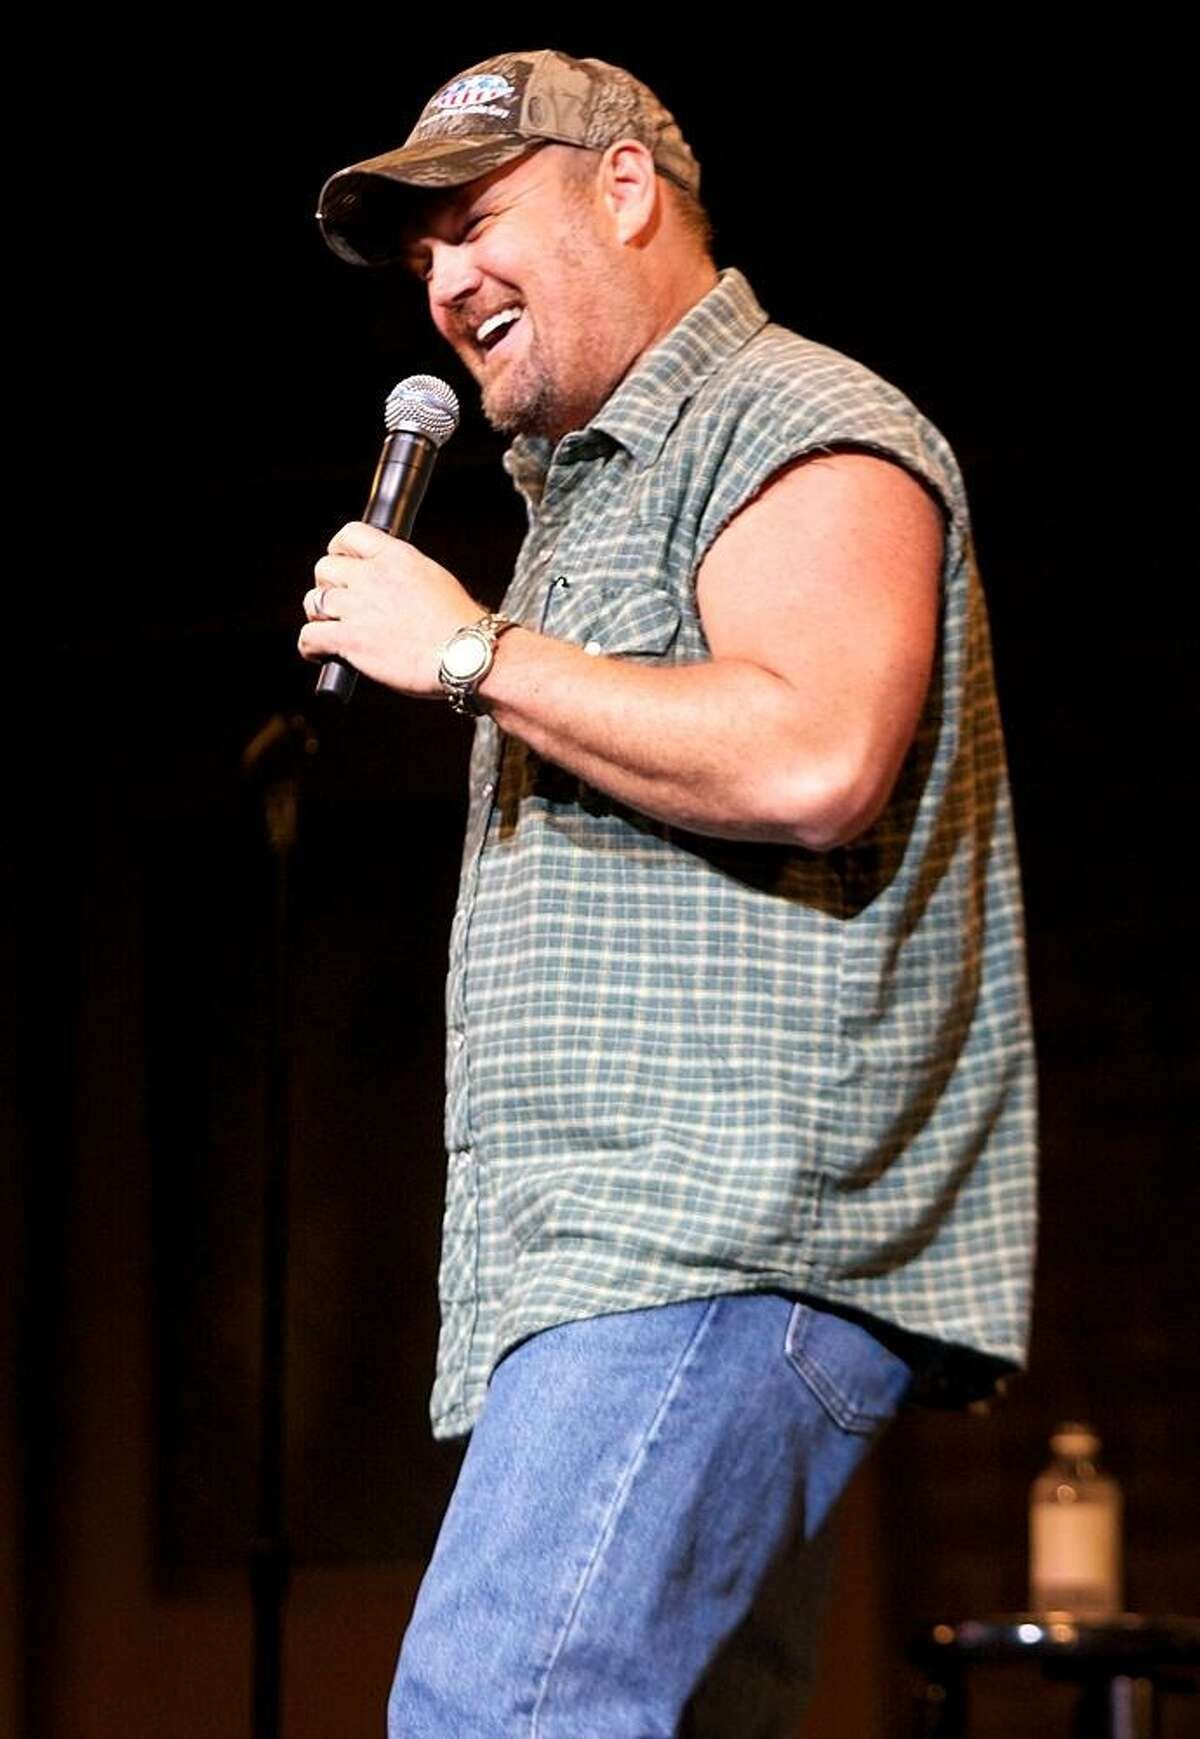 """Daniel Lawrence Whitney, better known by the stage name Larry the Cable Guy, is shown performing on stage during a sold out """"live"""" concert appearance."""